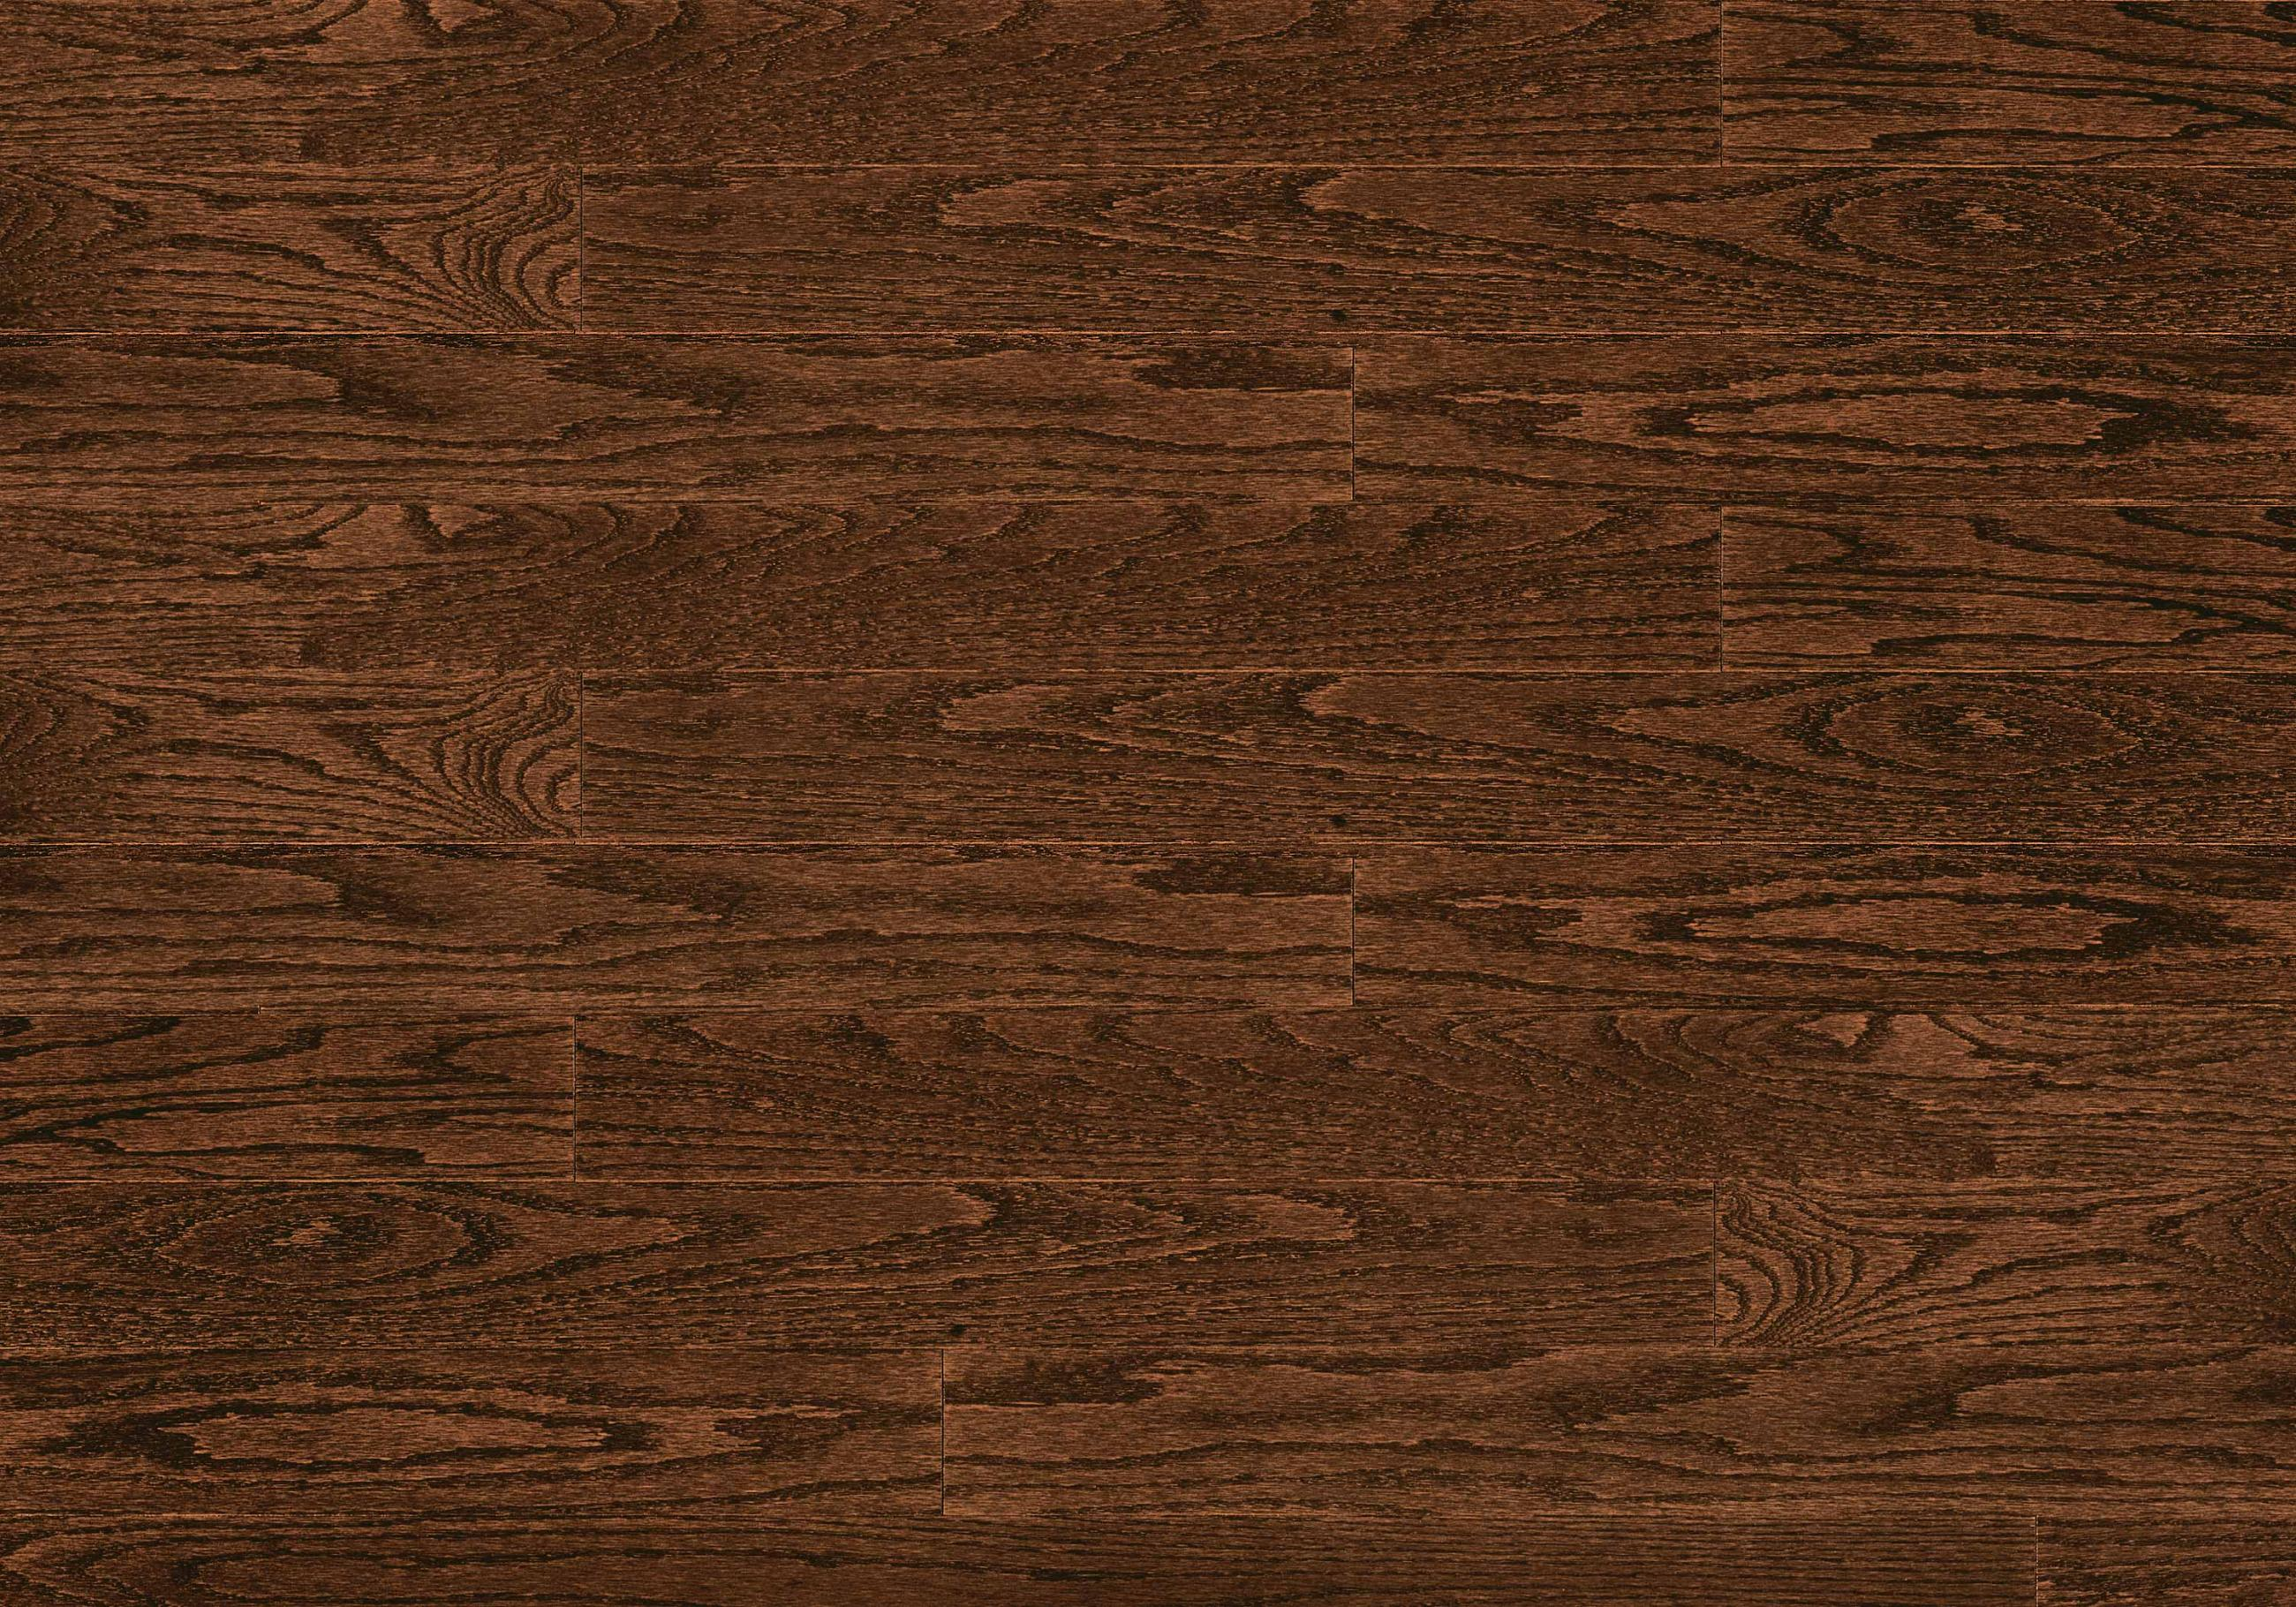 lauzon ambiance collection red oak carob aa floors more ltd. Black Bedroom Furniture Sets. Home Design Ideas